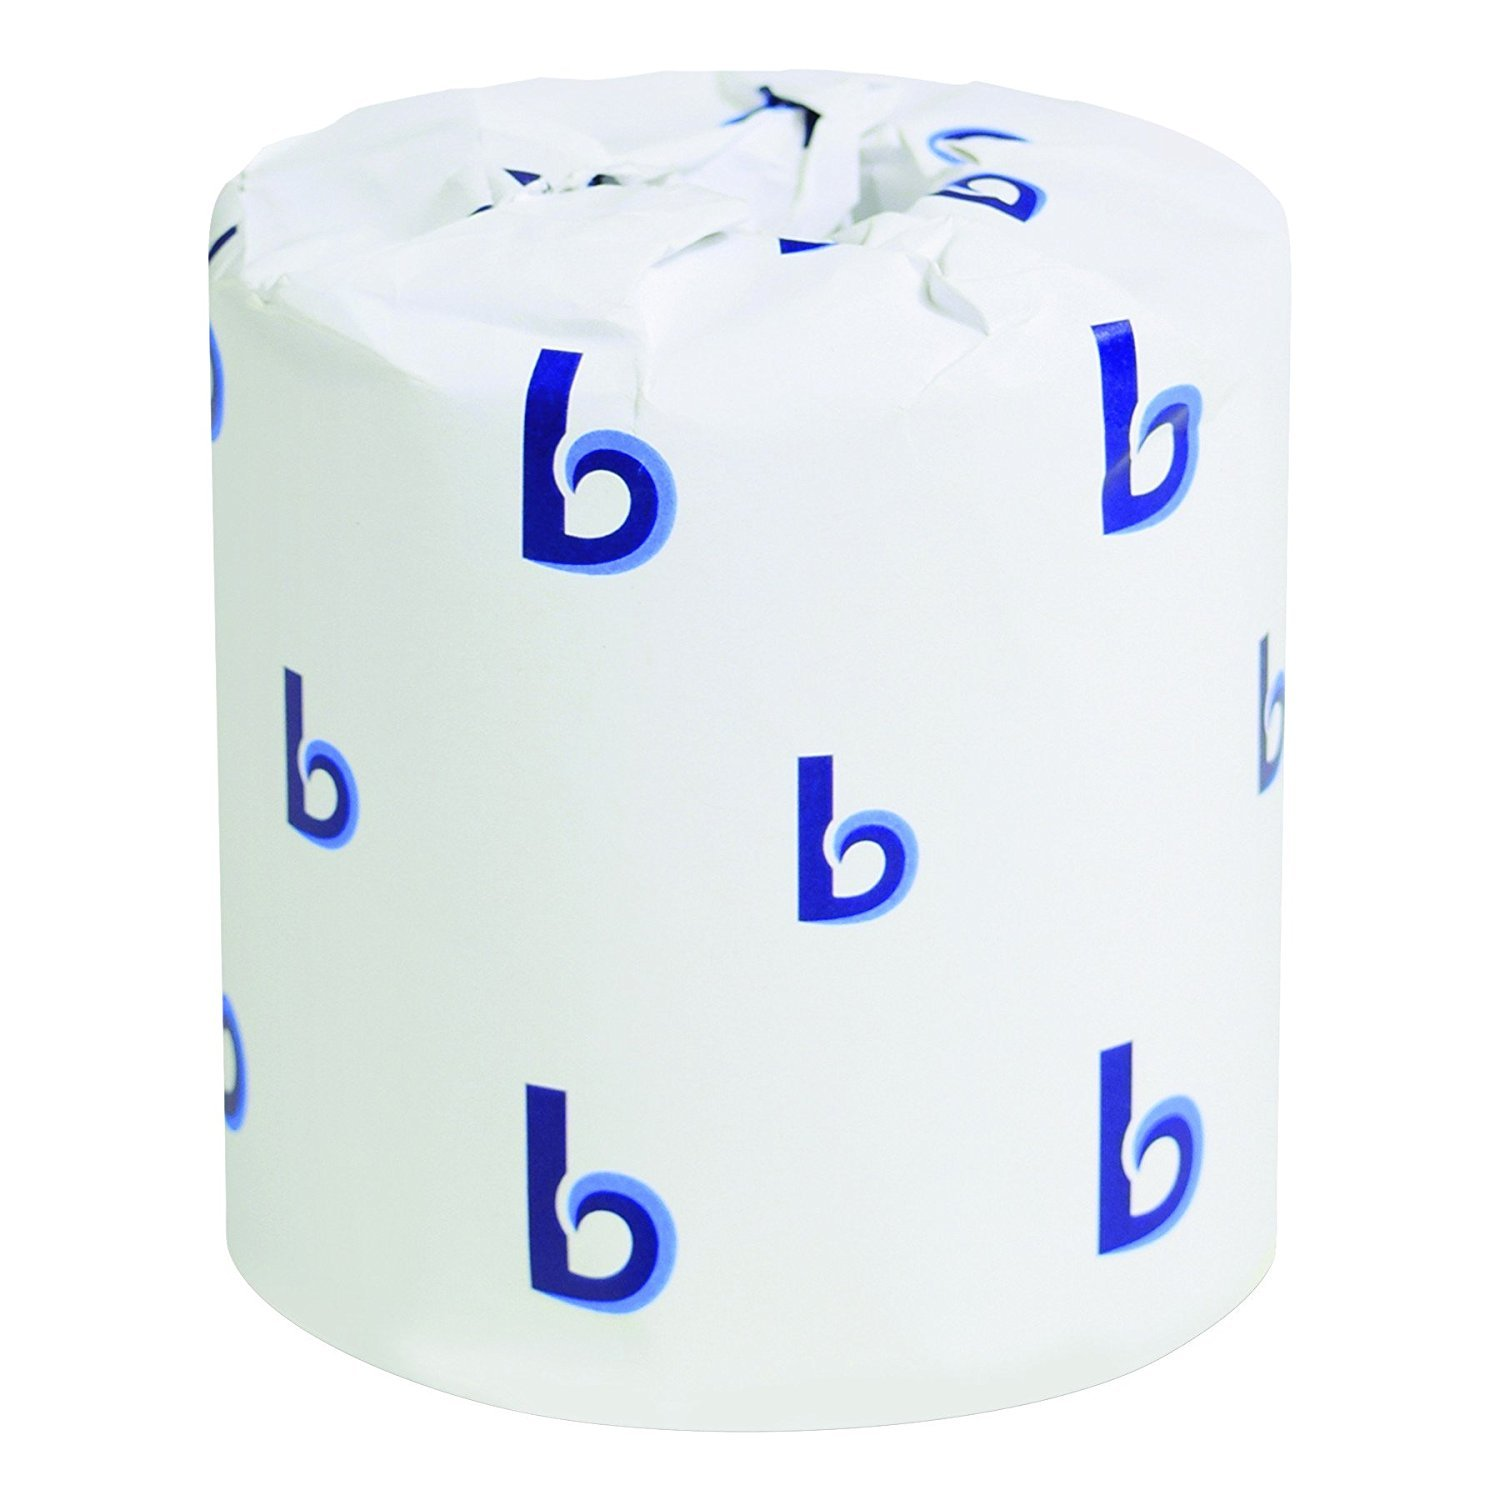 Boardwalk 6145 Bathroom Tissue, Standard, 2-Ply, White, 4 x 3 Sheet, 500 Sheets per Roll Case of 96 (3 Pack) BVMG